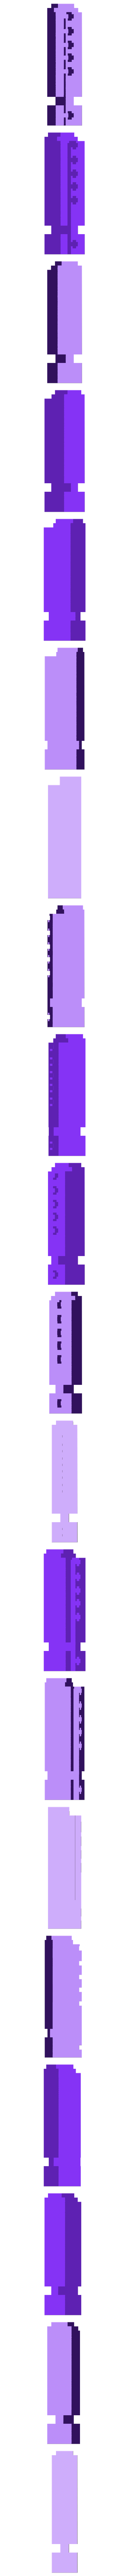 Flute.stl Download free STL file Zelda 8 bits Inventory menu with items • Object to 3D print, conceptify